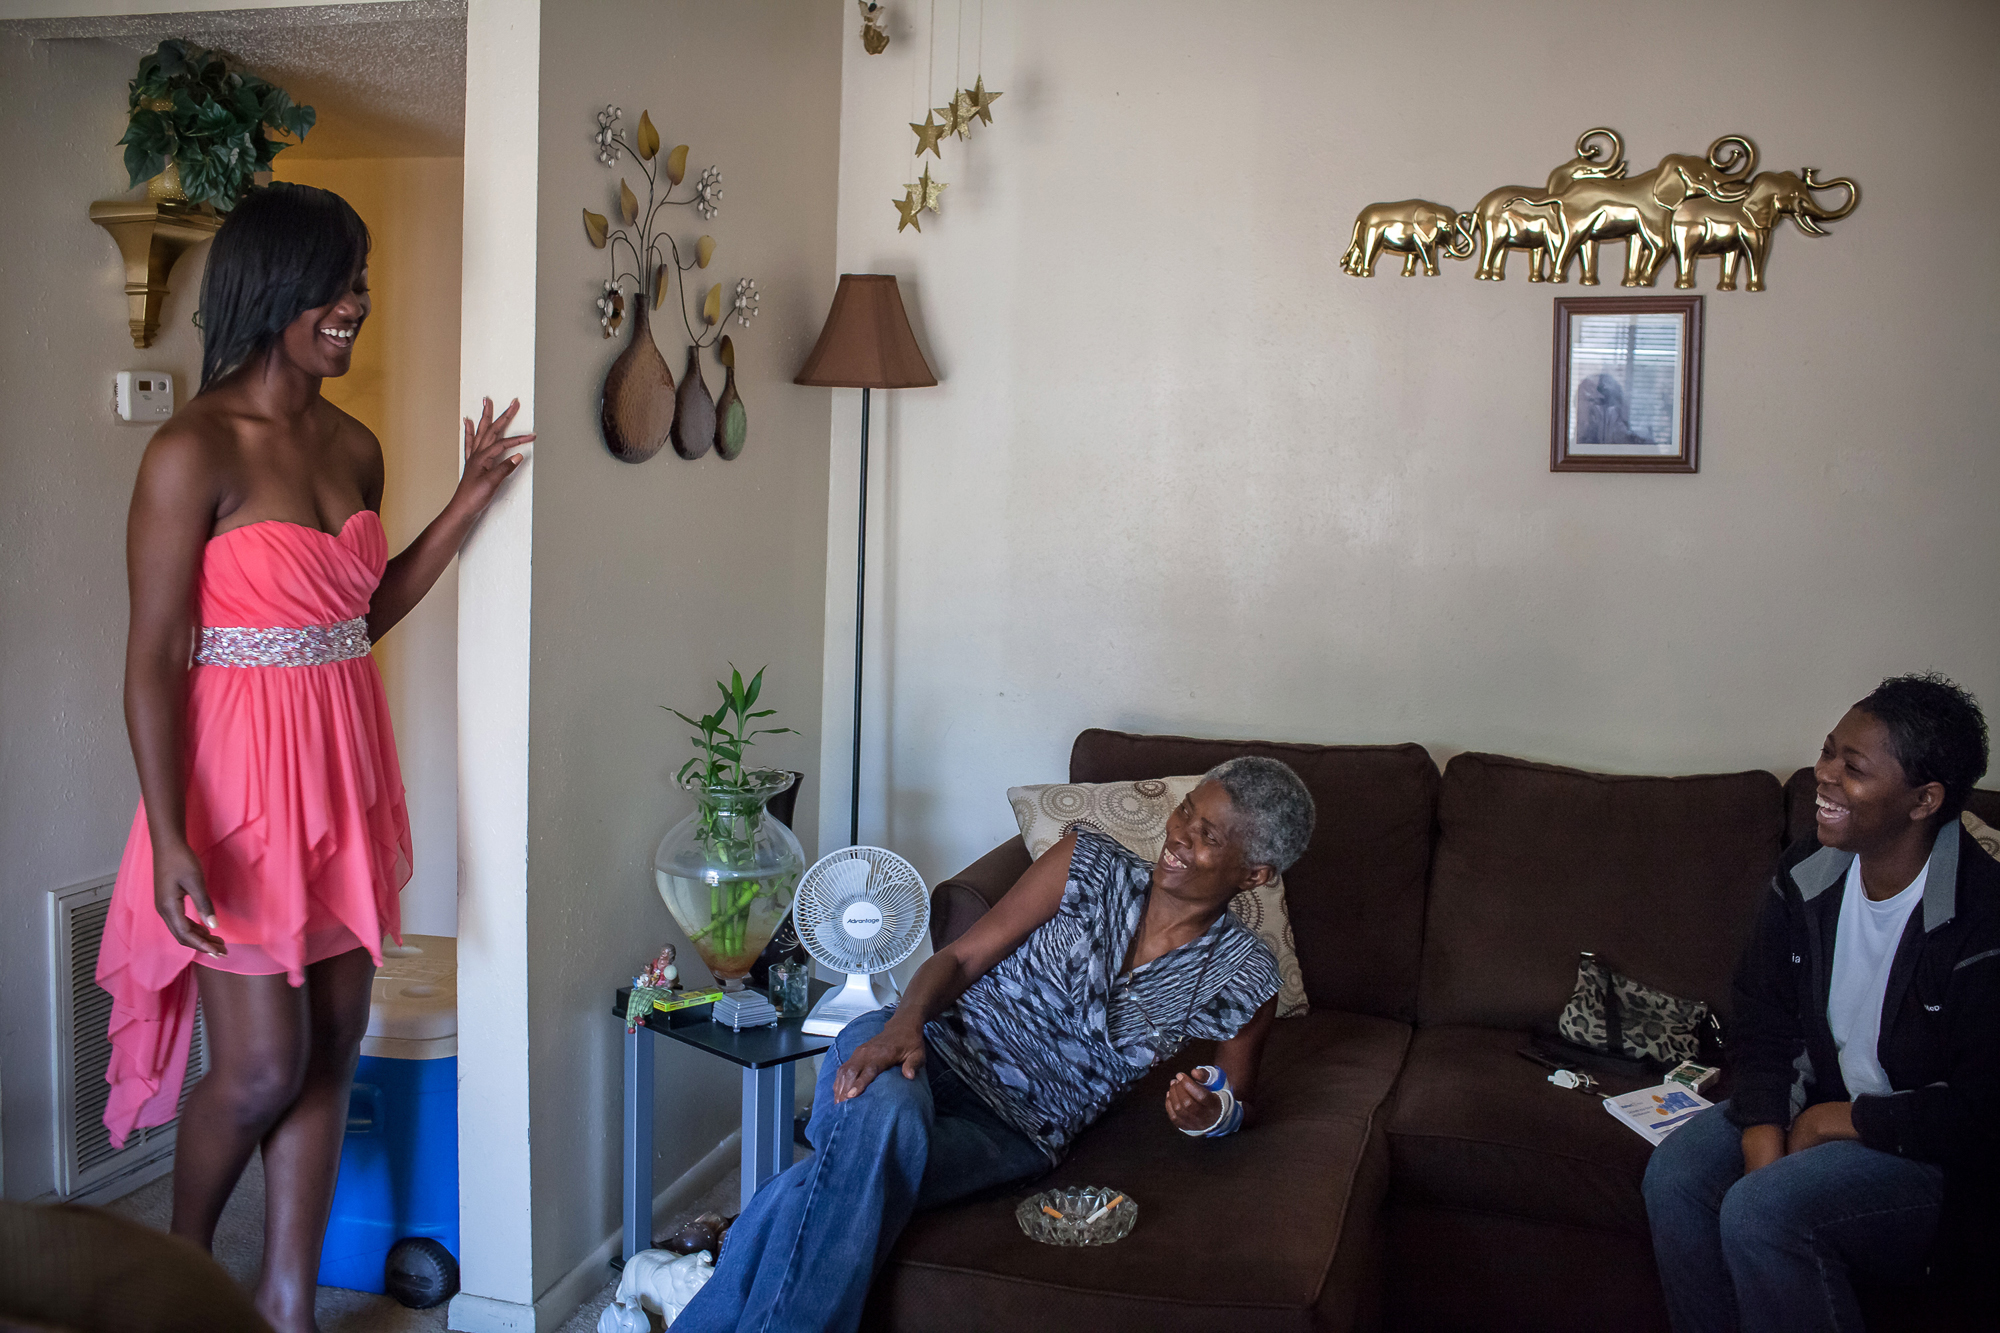 Raven Simms, Ray's daughter, shows off her prom dress to her grandmother, Joslin, and her mother, Sheila, in 2013. Raven and her siblings miss Ray the most on holidays, birthdays, proms, graduations, and other milestones. She says her father came to her in a dream a week before her senior prom. He held her tightly, whispered to her that he loved her and that everything was going to be all right. Then he vanished back to his grave.